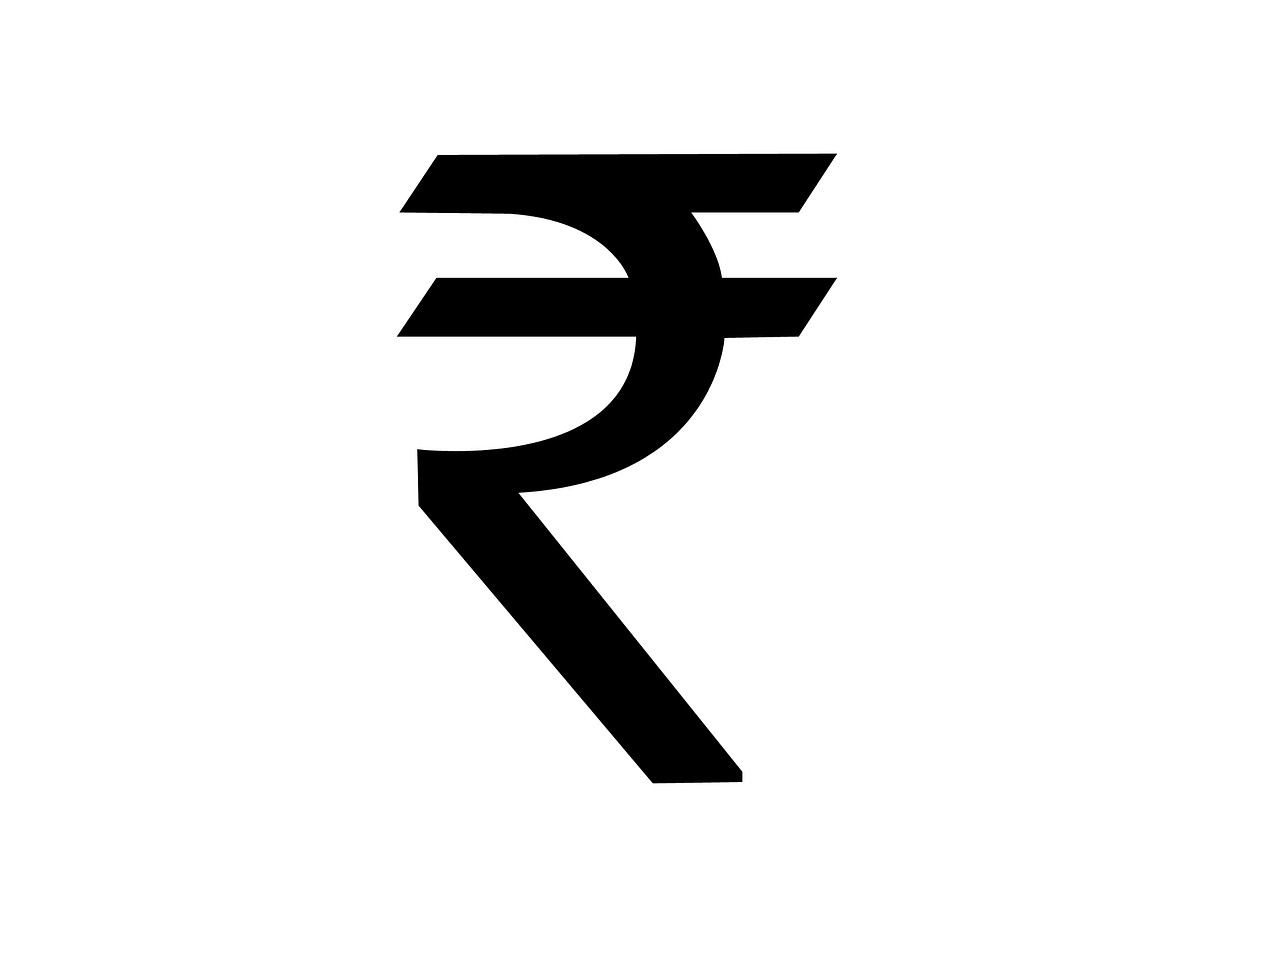 indian currency symbol rupees free picture